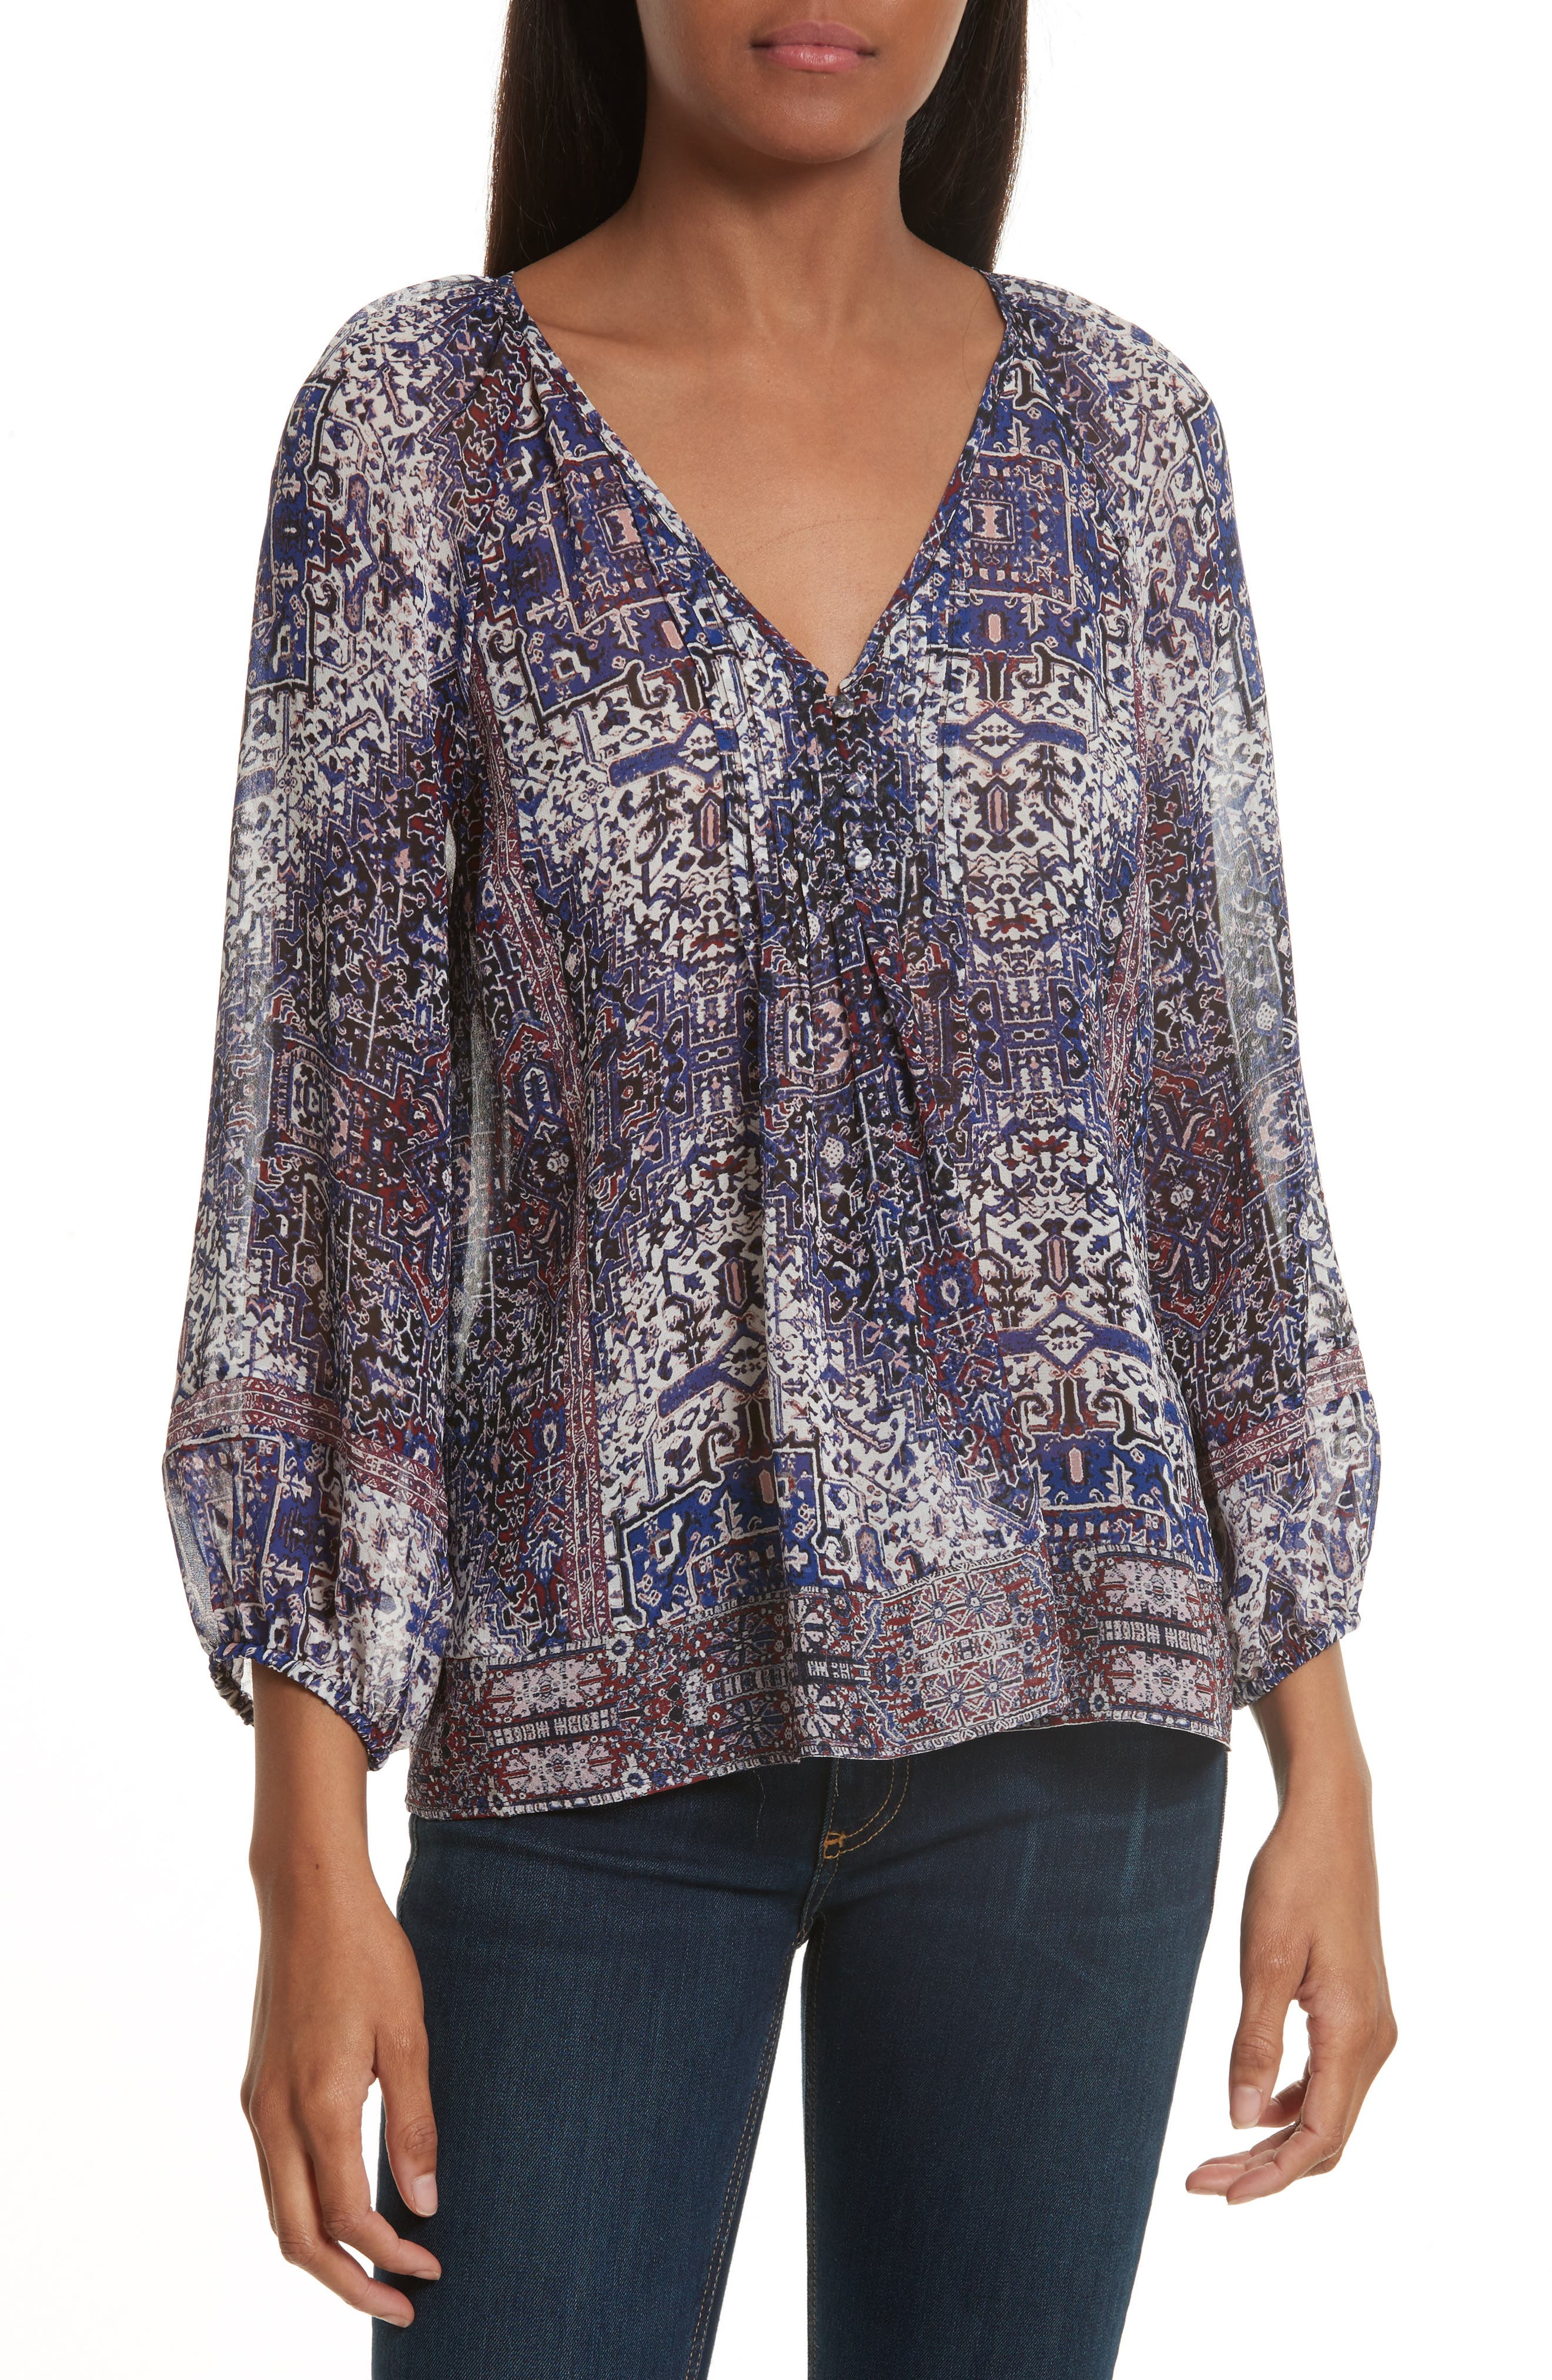 Gwendalyn Blouse,                         Main,                         color, 002